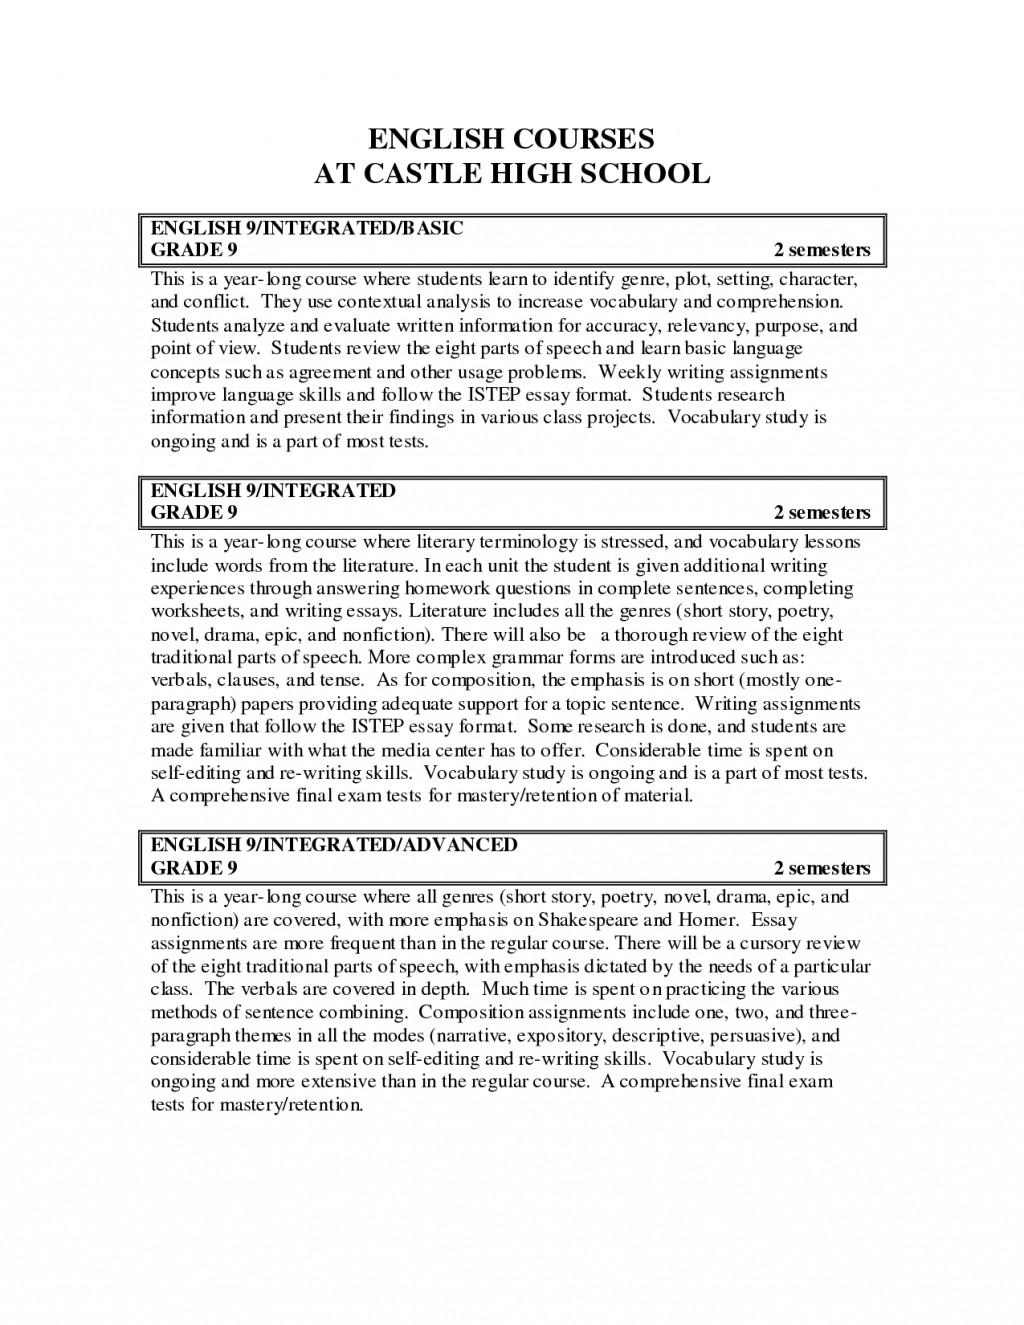 011 Example Of Formal Essay Writing Goal Blockety Co Introduction Formate 3 Topices Free With Author Paragraph Short About Friendship For High School Pdf What Is Impressive A Analysis Academic Analytical Large